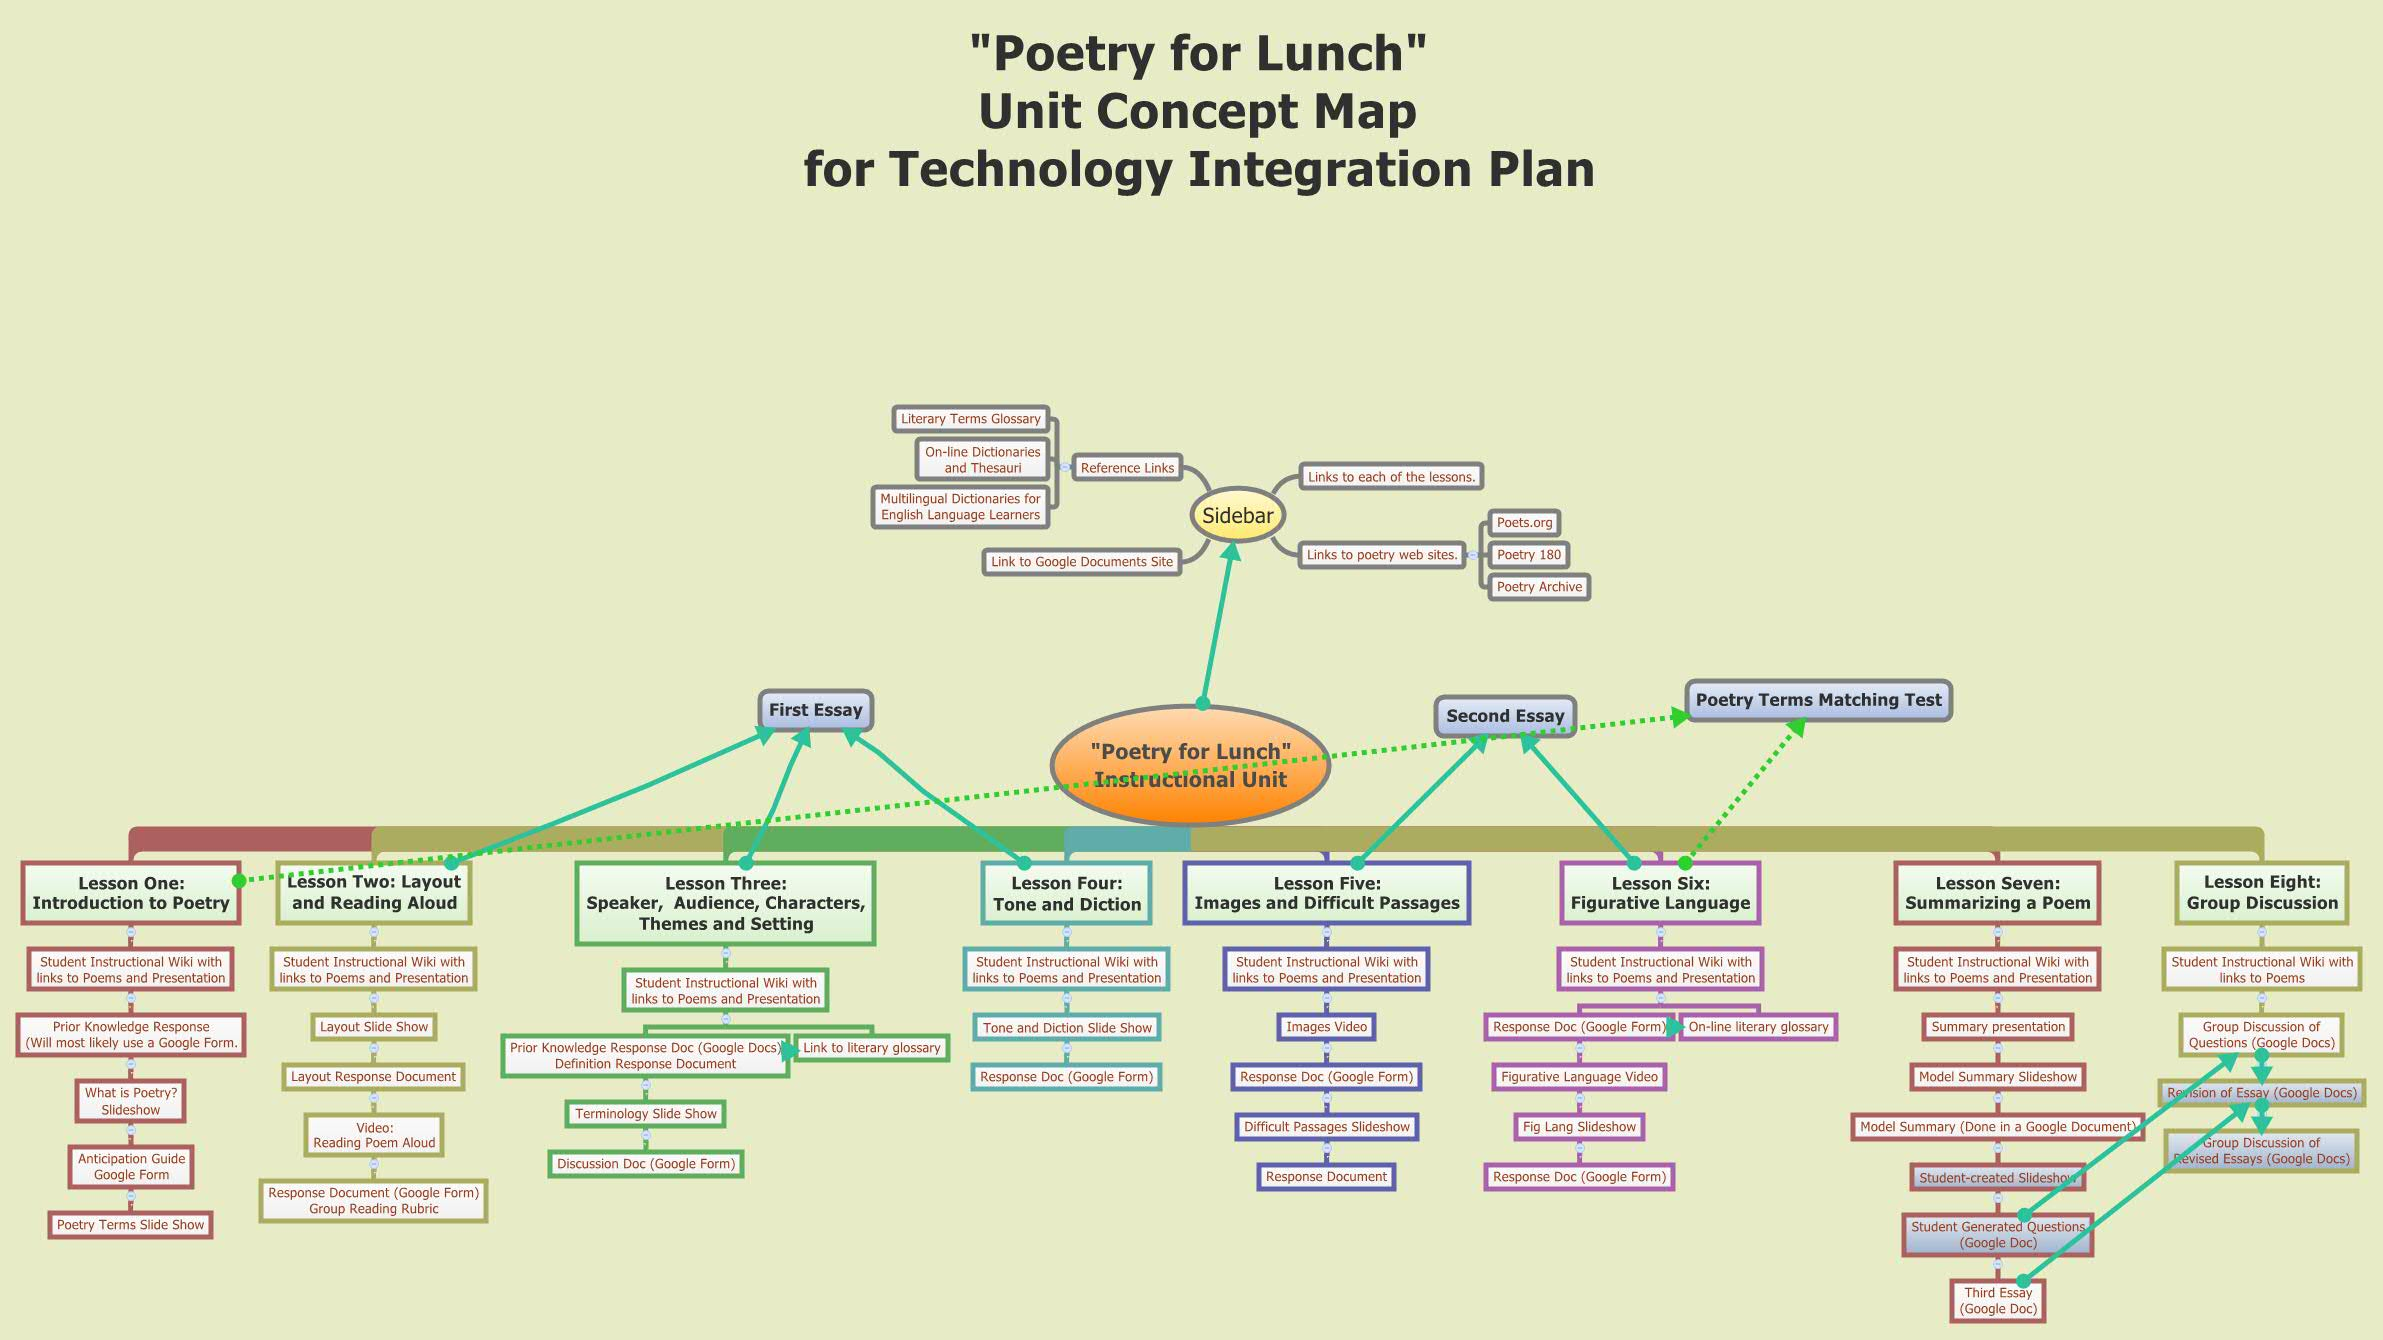 Poetry for Lunch